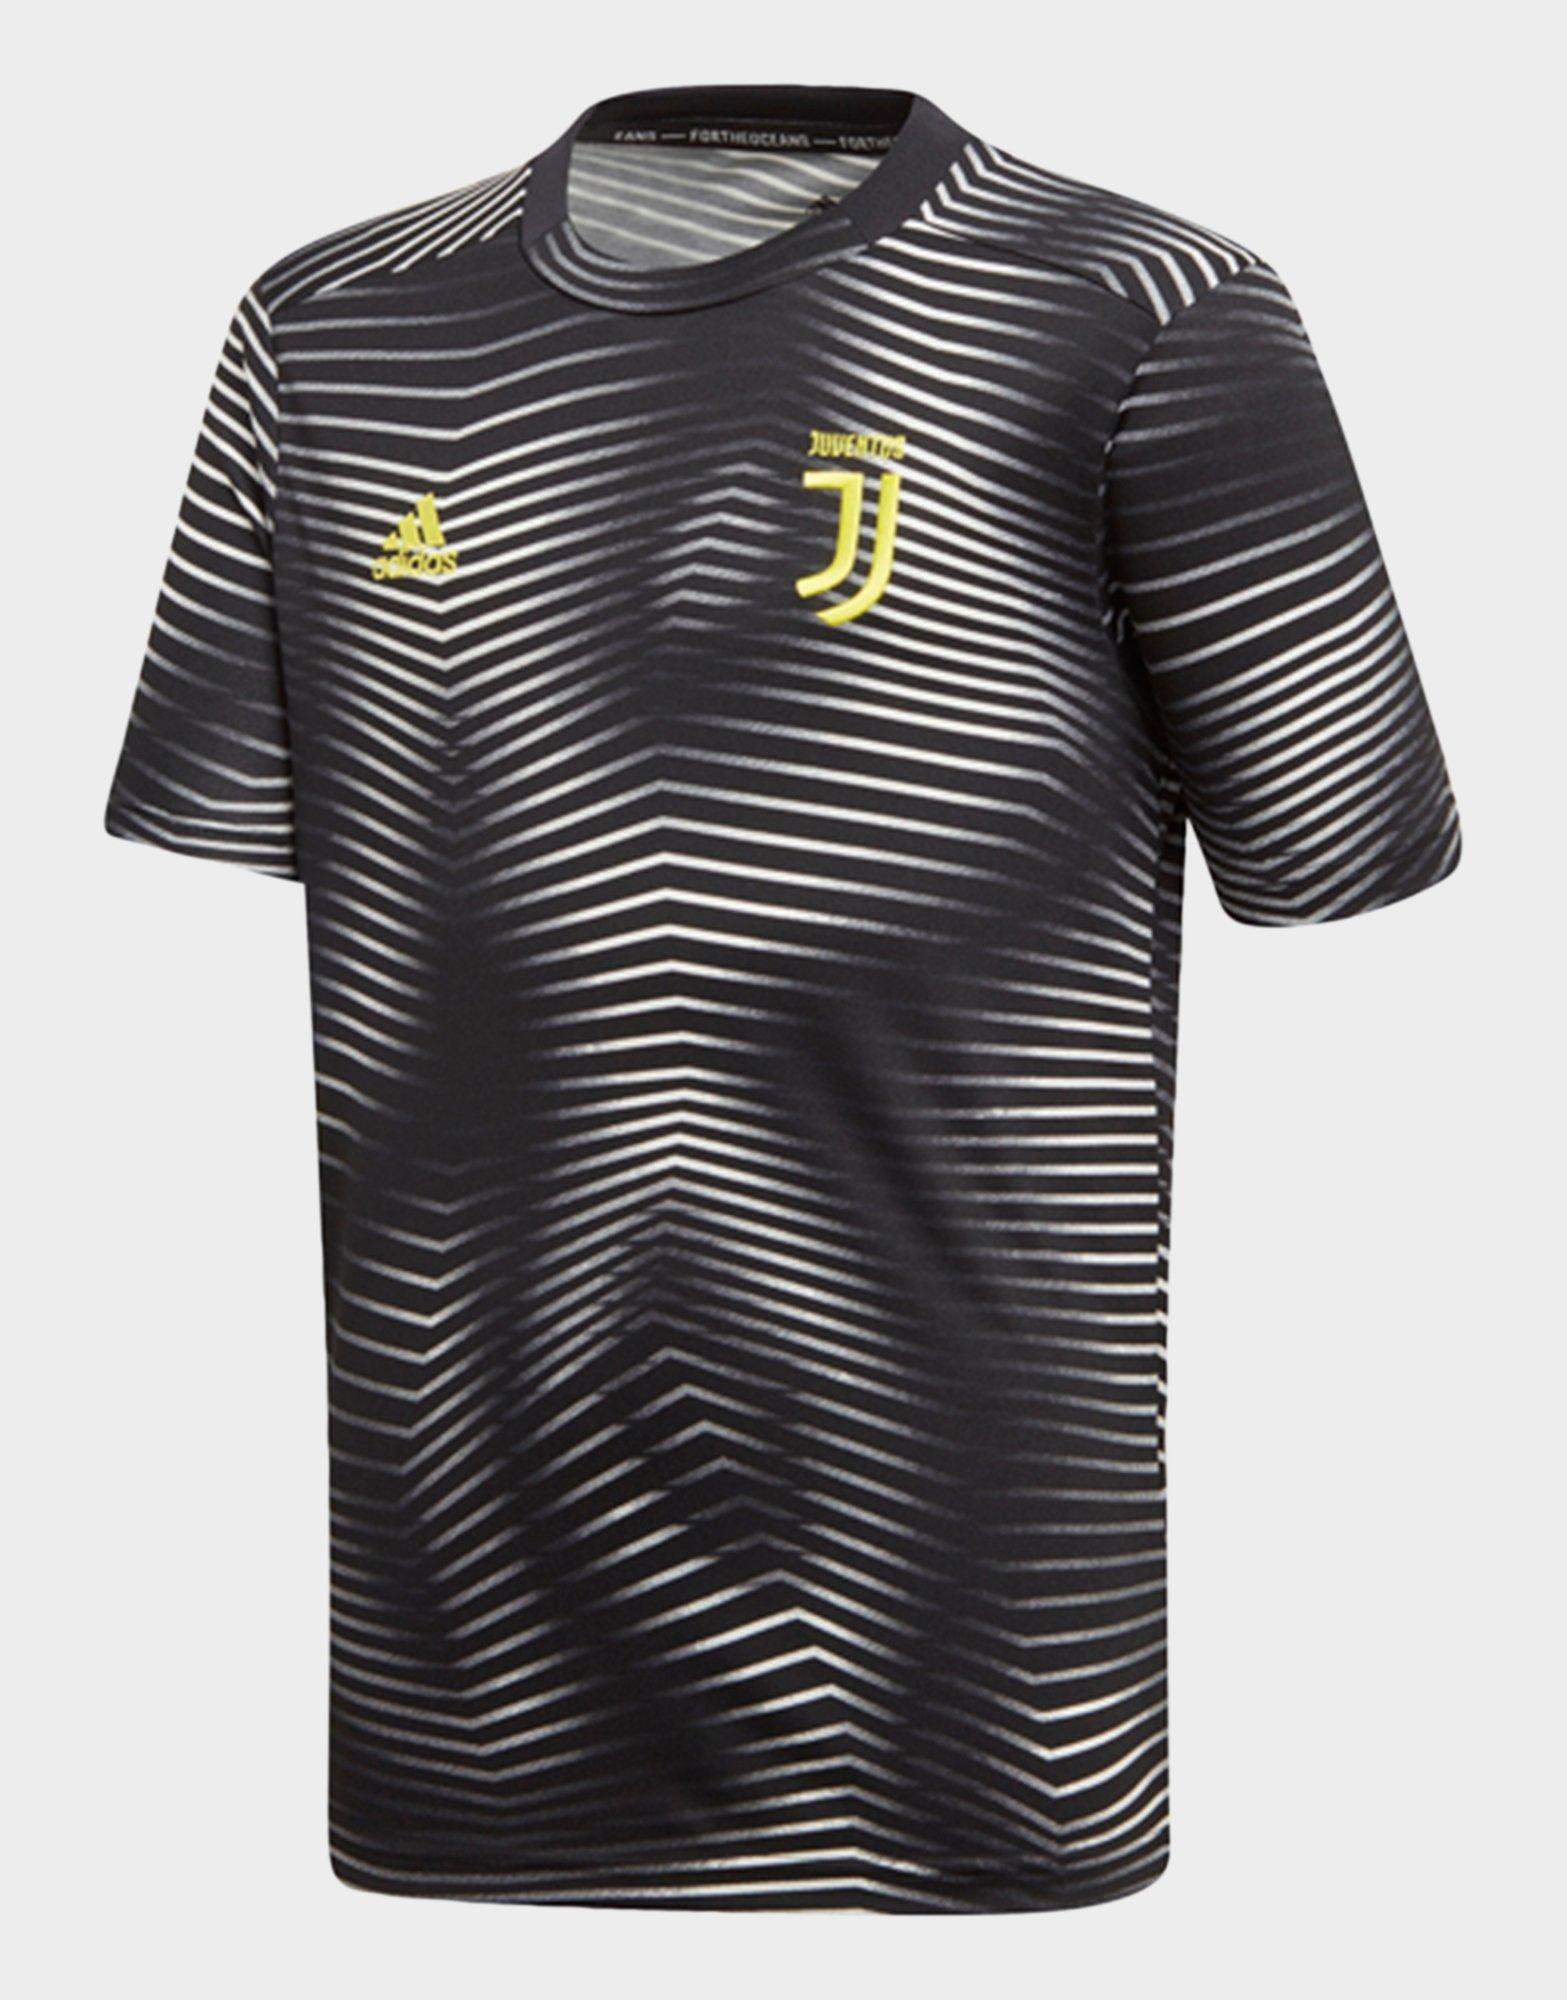 966288acd Lyst - Adidas Juventus Home Pre-match Jersey in Black for Men